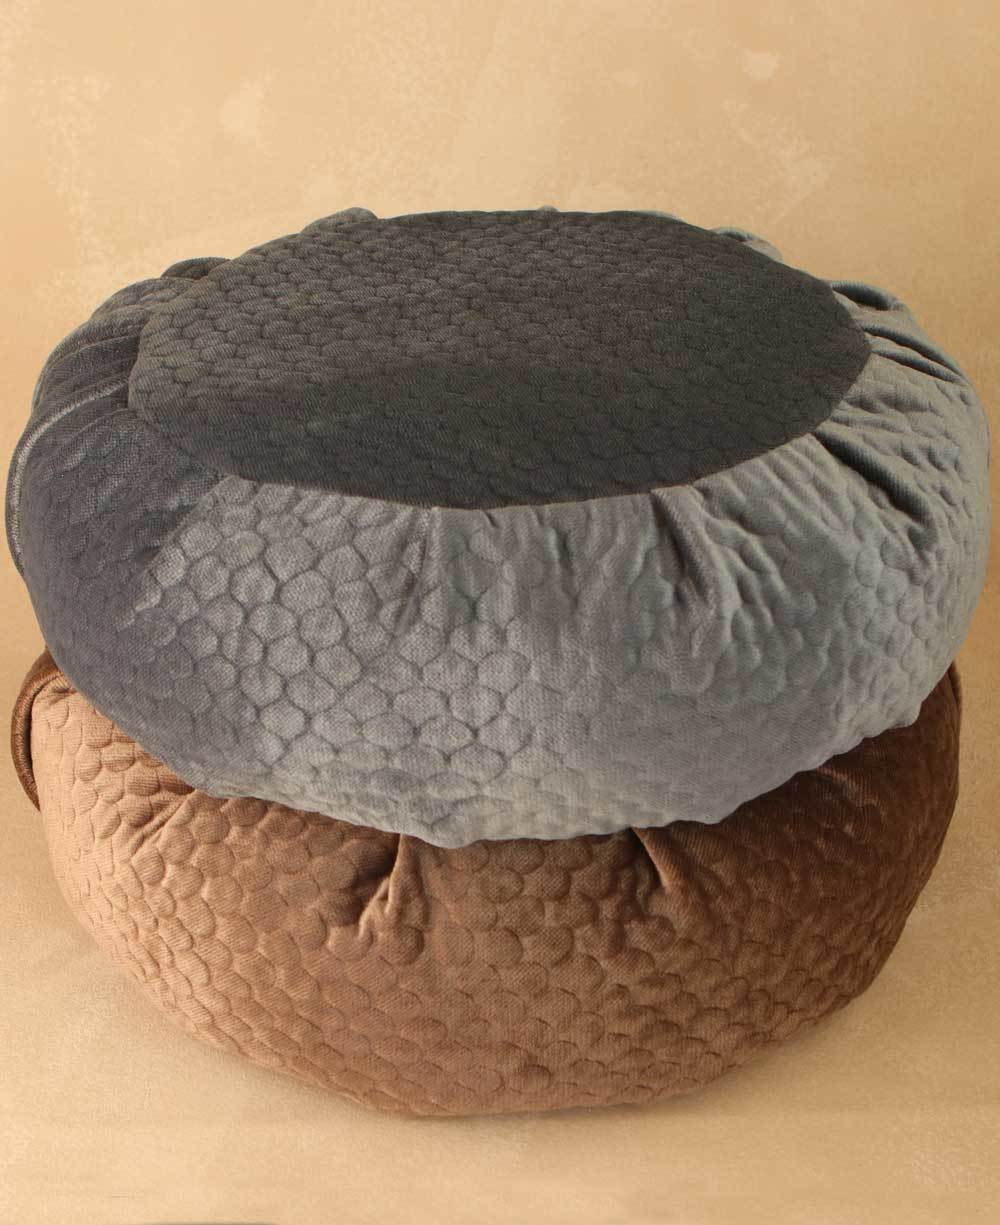 Image of Luxe Quilted Zafu Meditation Cushion in Honeycomb